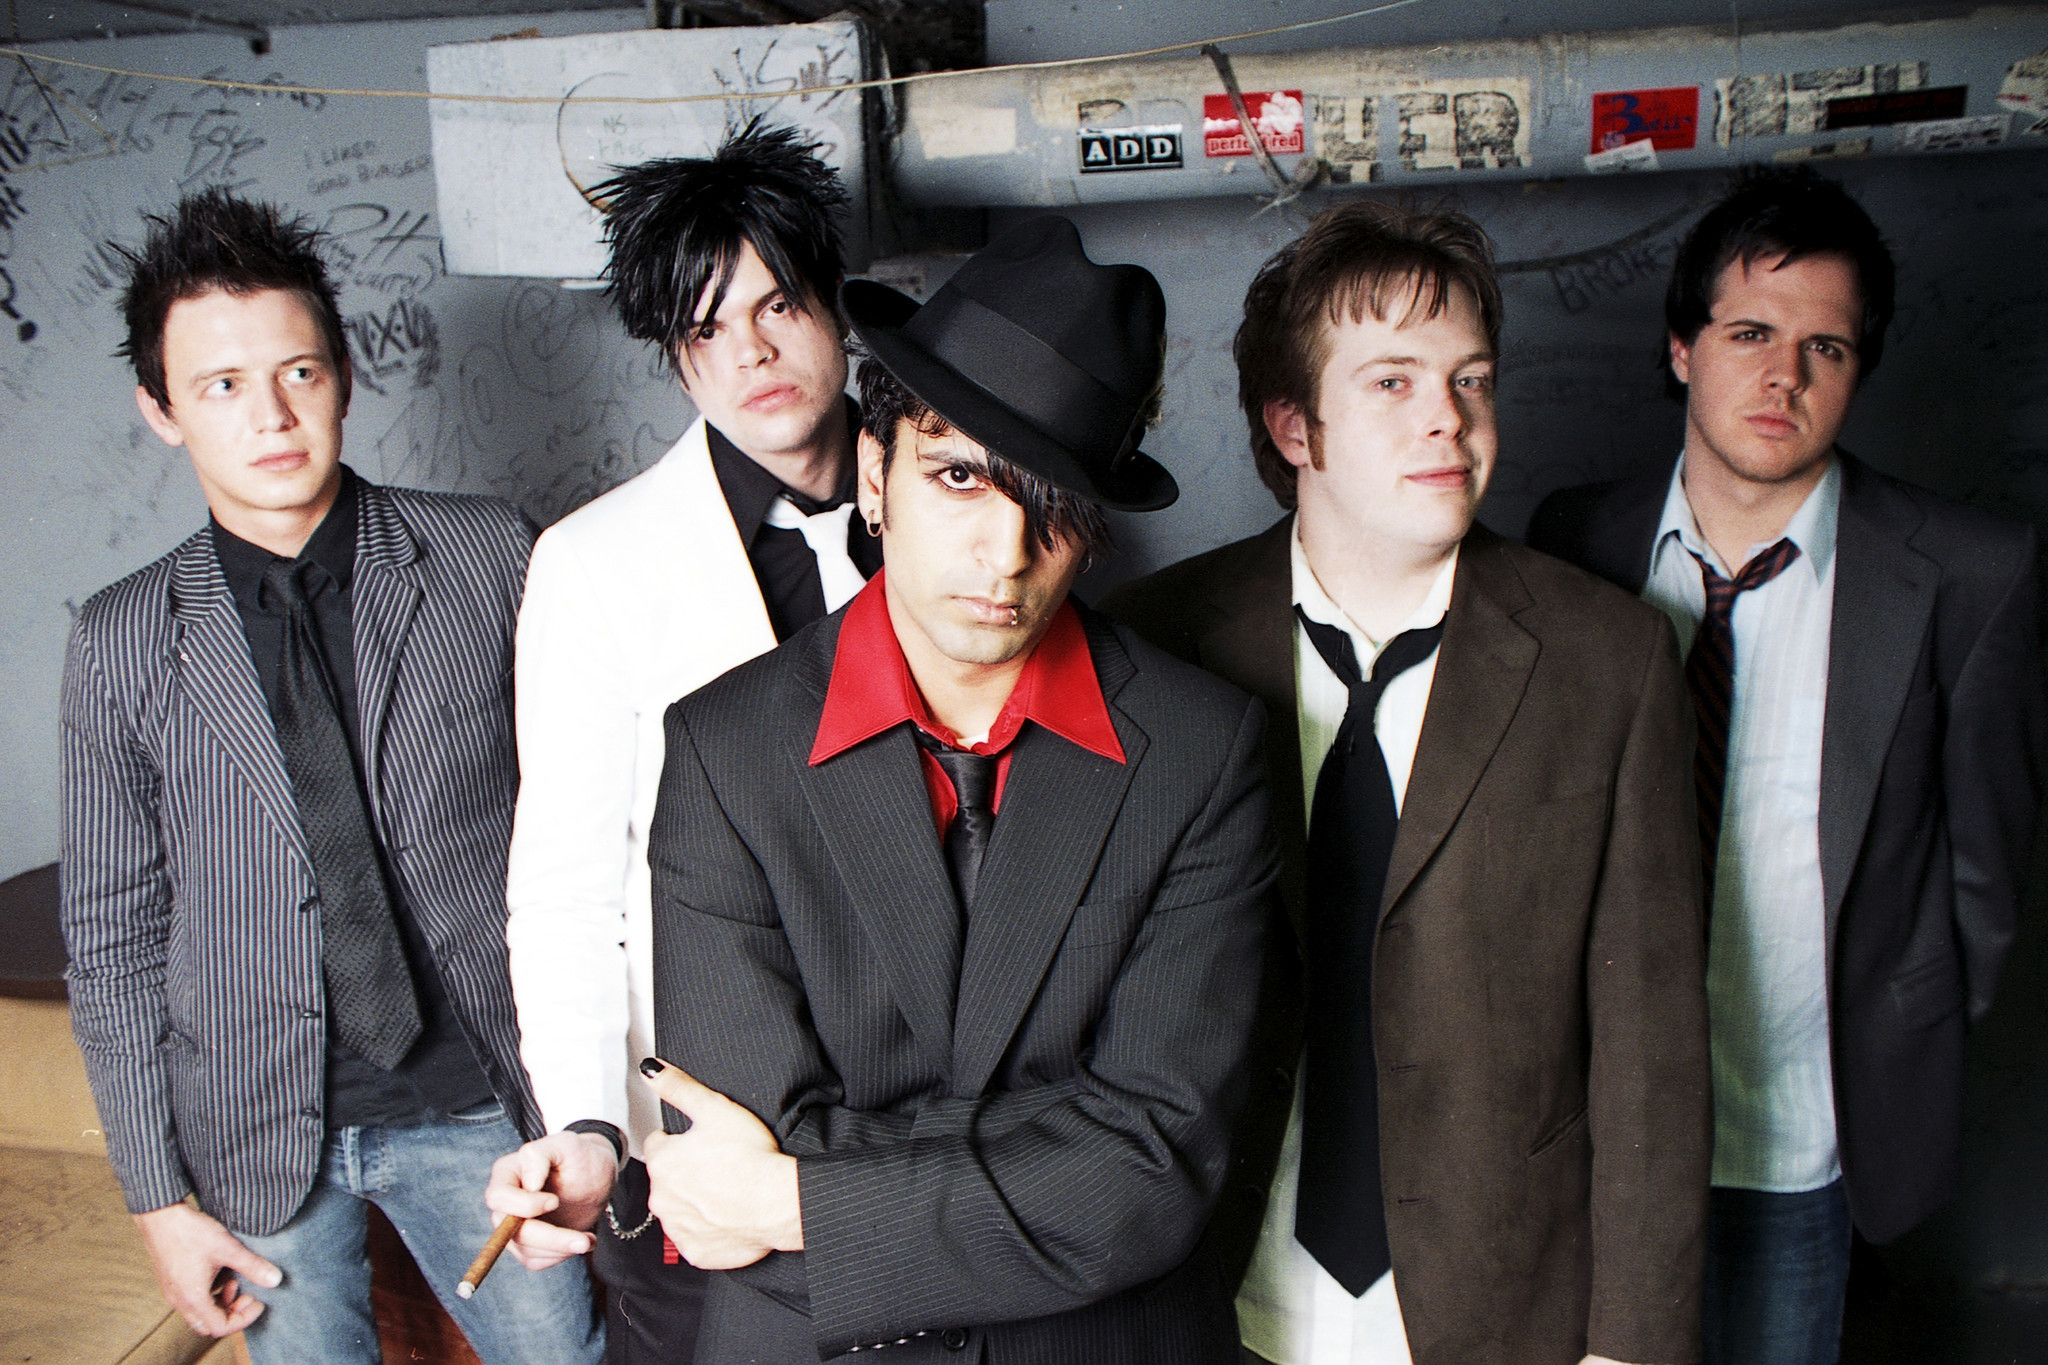 A 2005 photo of Lucky Boys Confusion, showing Joe Sell second from right.